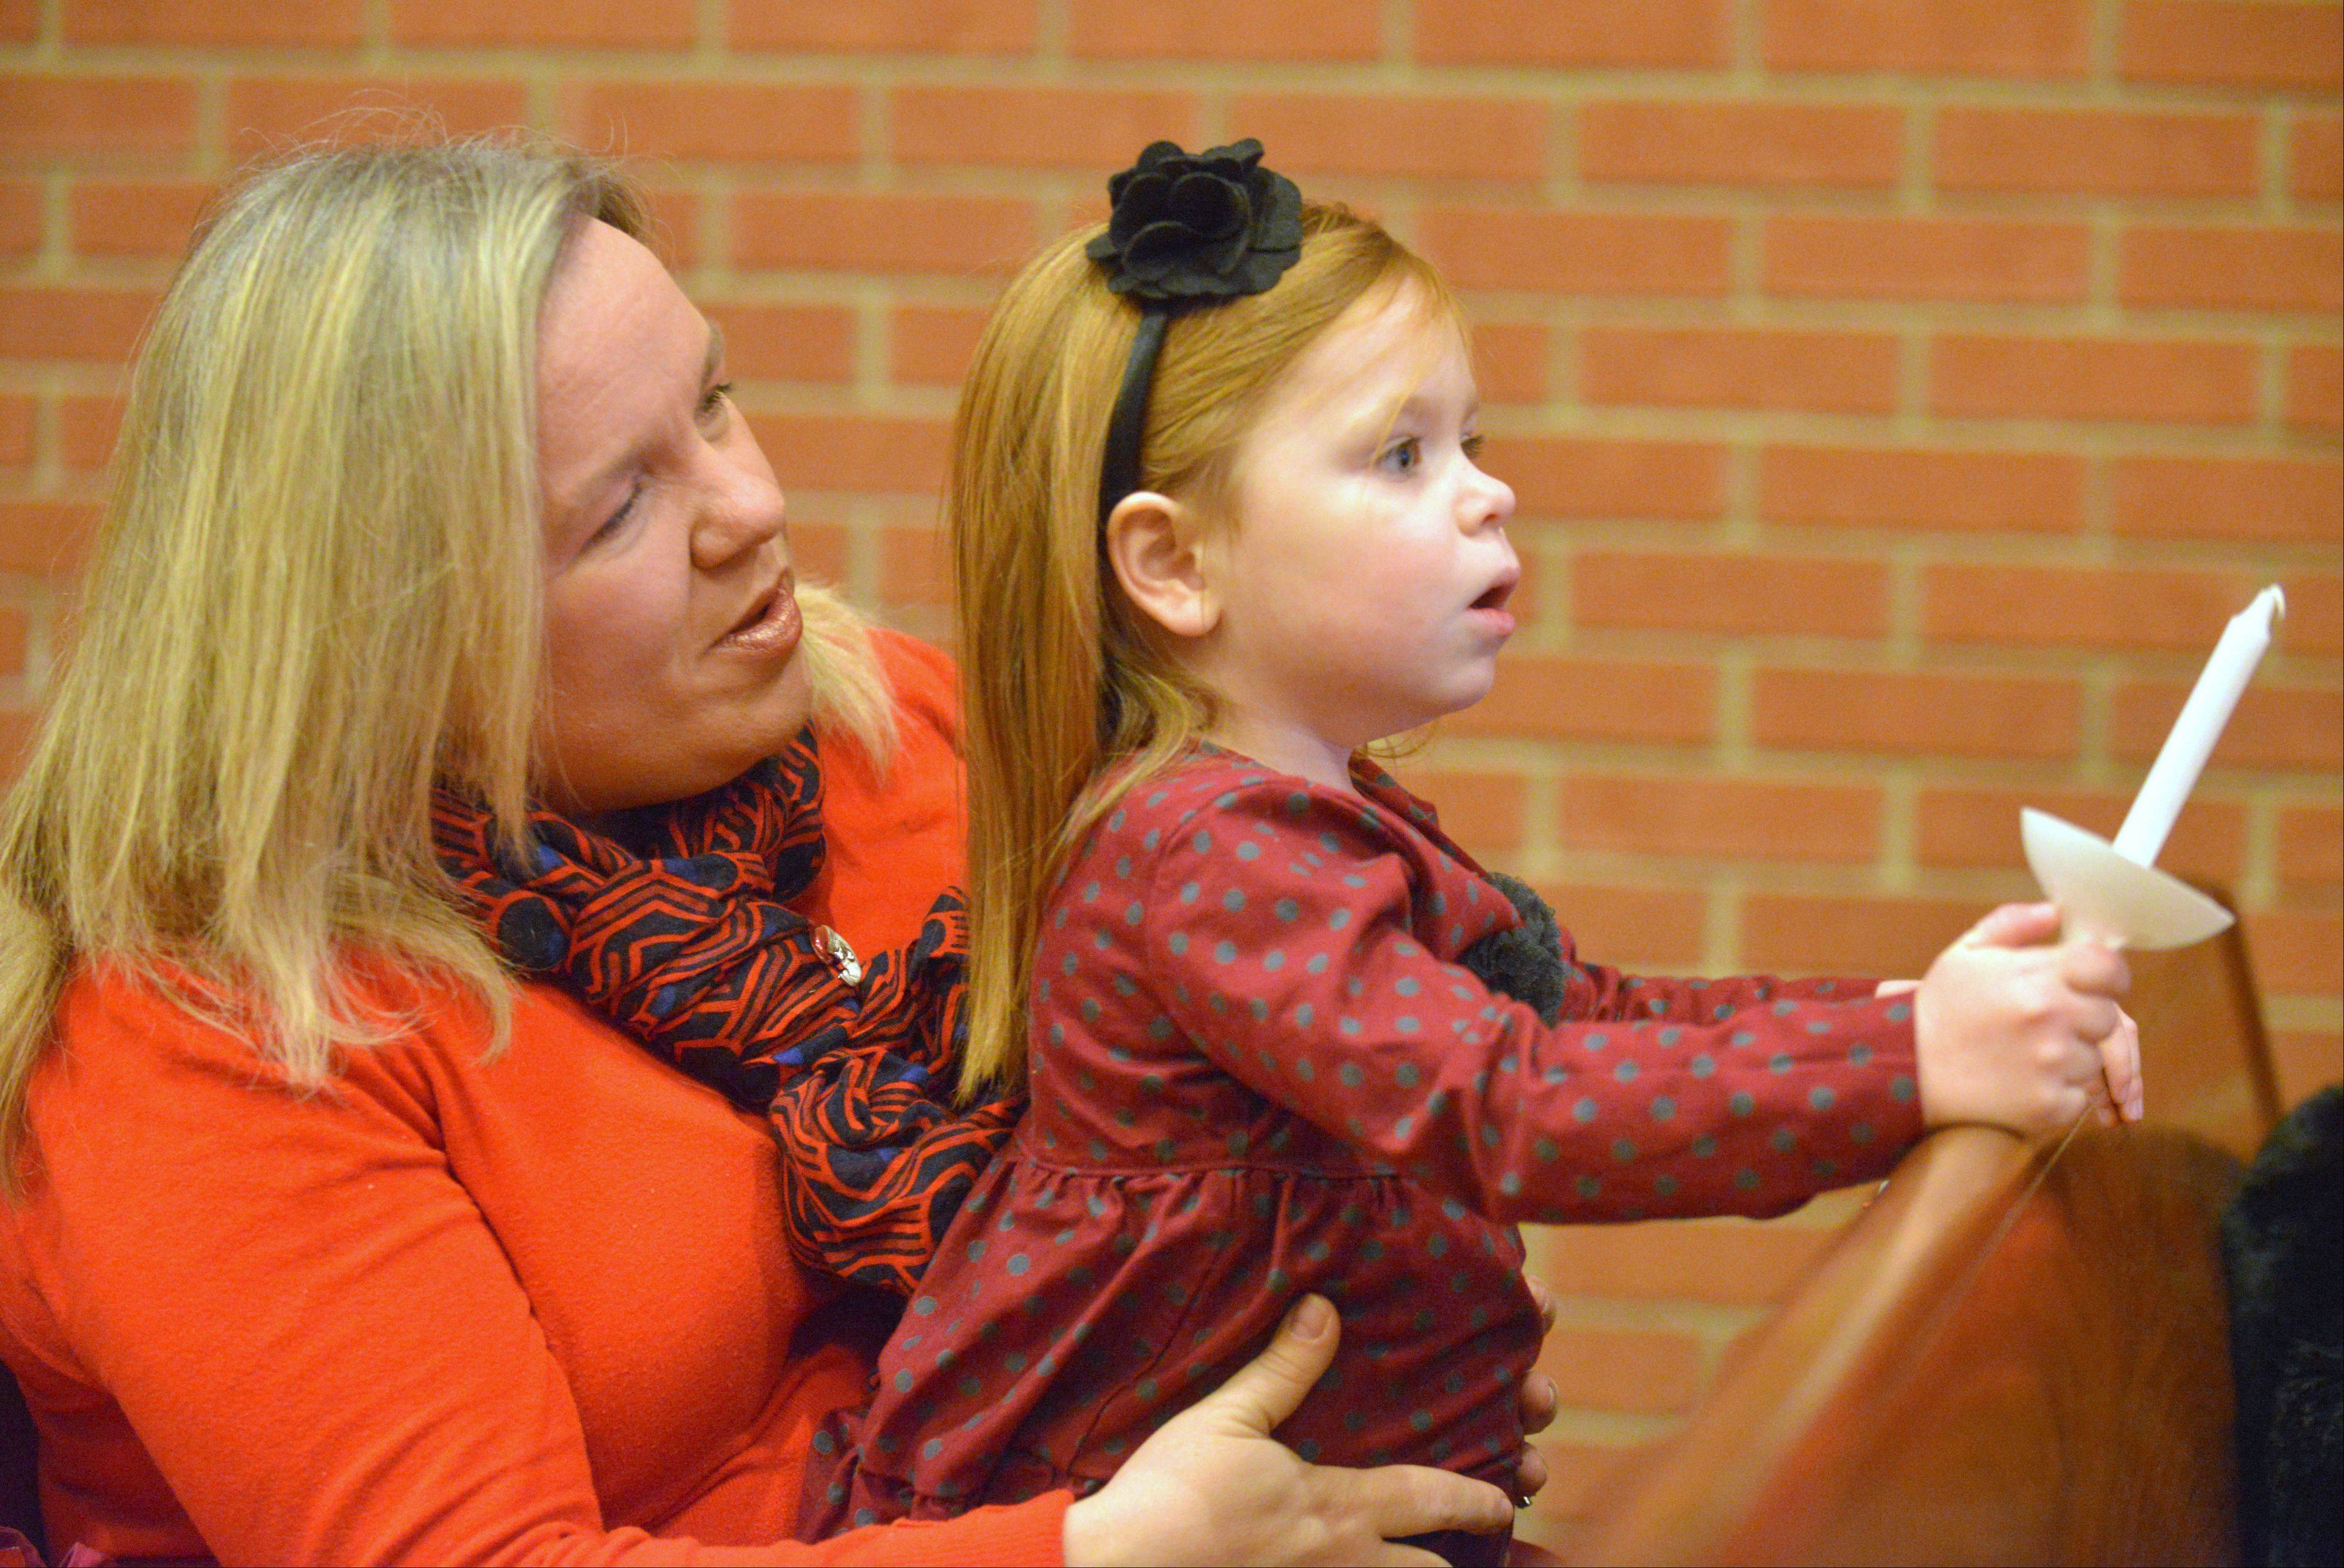 Ruth Ciamarra and her daughter Anna, 4, took part in the Holy Trinity Lutheran Church family Christmas Eve service Tuesday in Lombard.